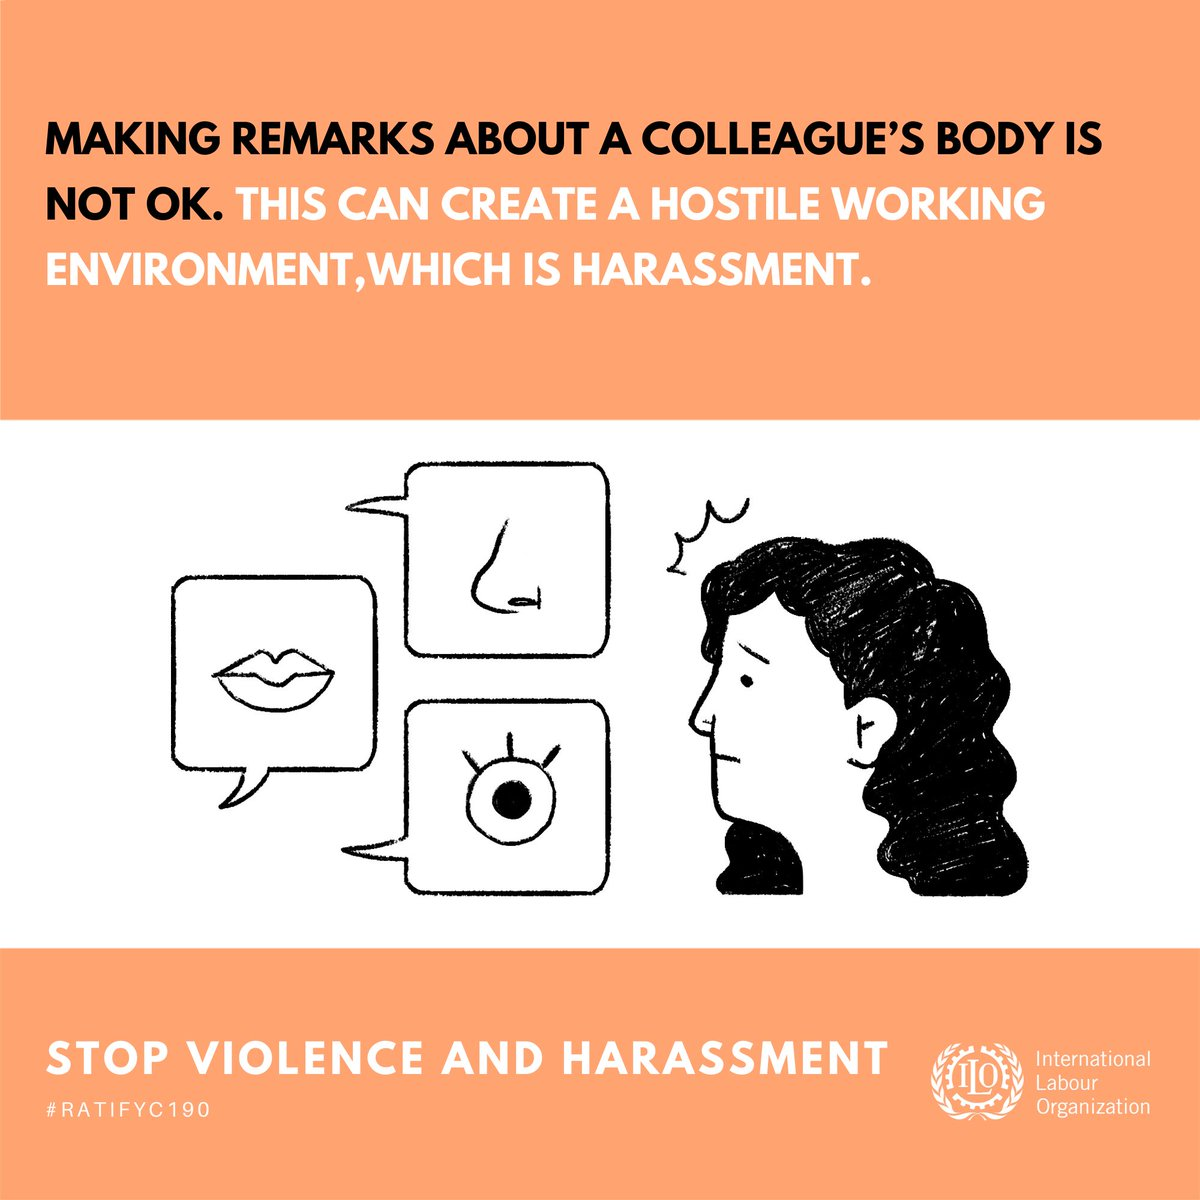 A simple rule anyone can follow to keep our workplaces harassment-free. #16Days